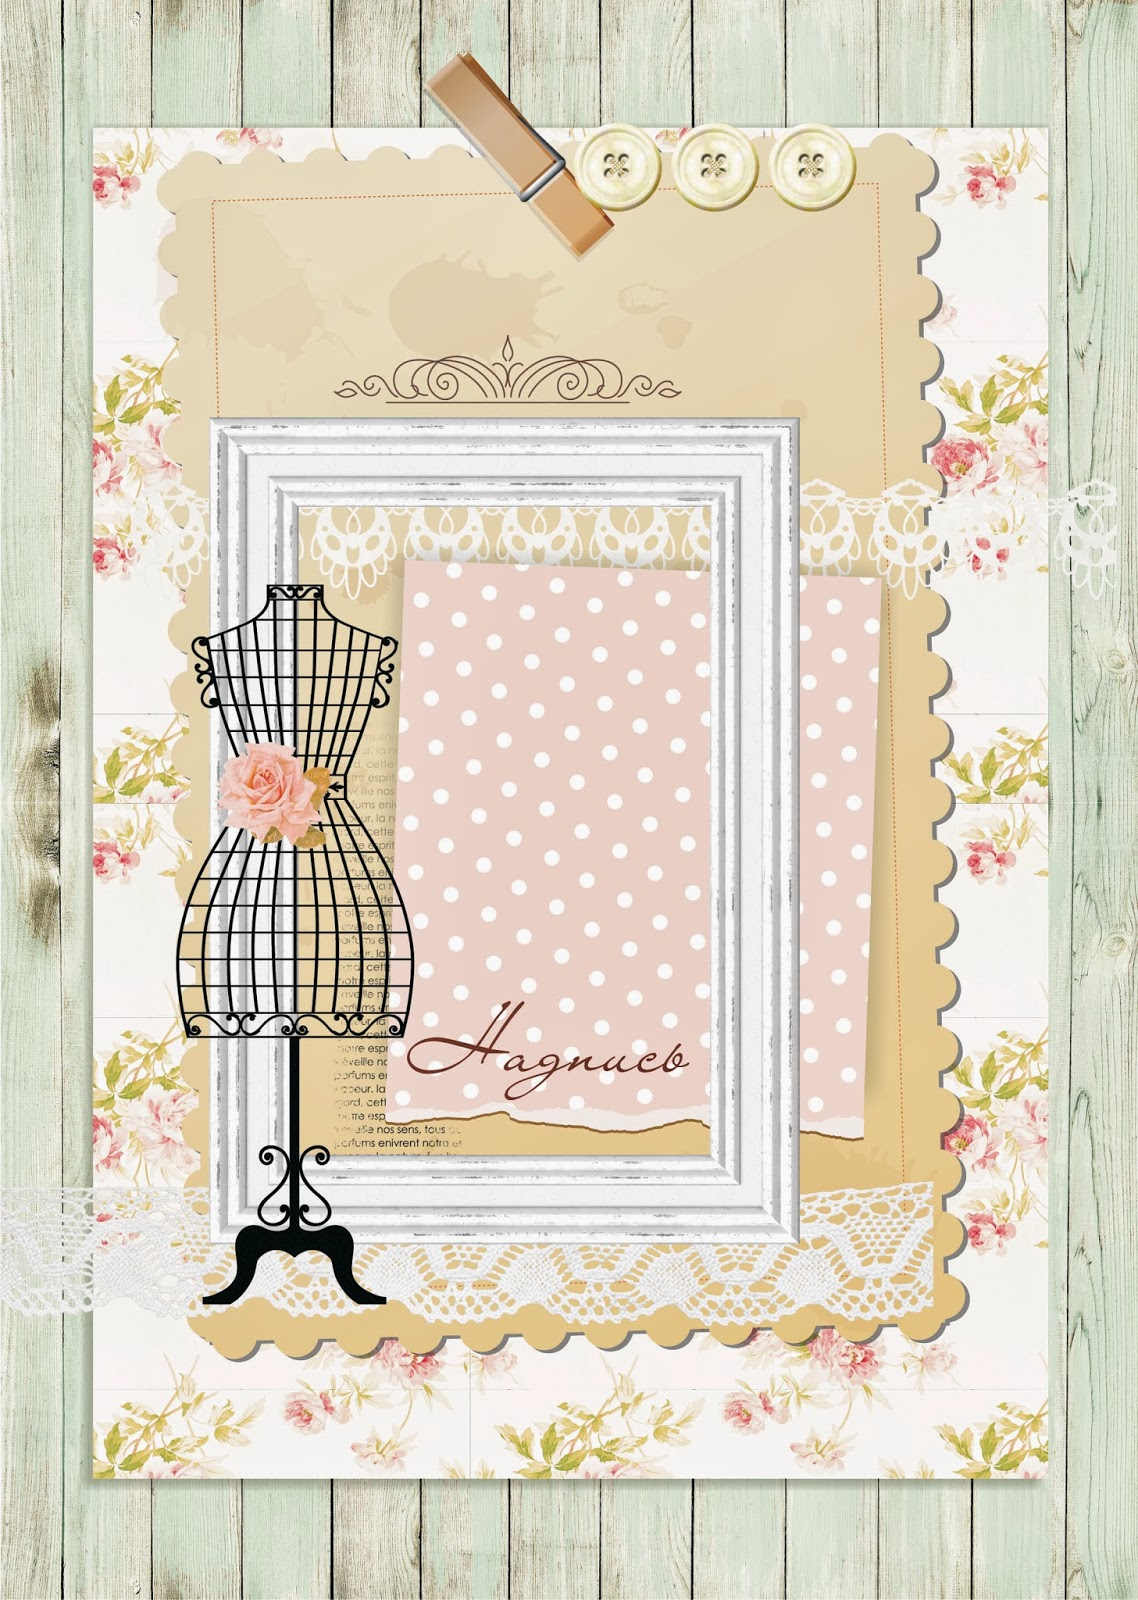 http://shabby-chic-ru.blogspot.ru/2014/04/blog-post_15.html